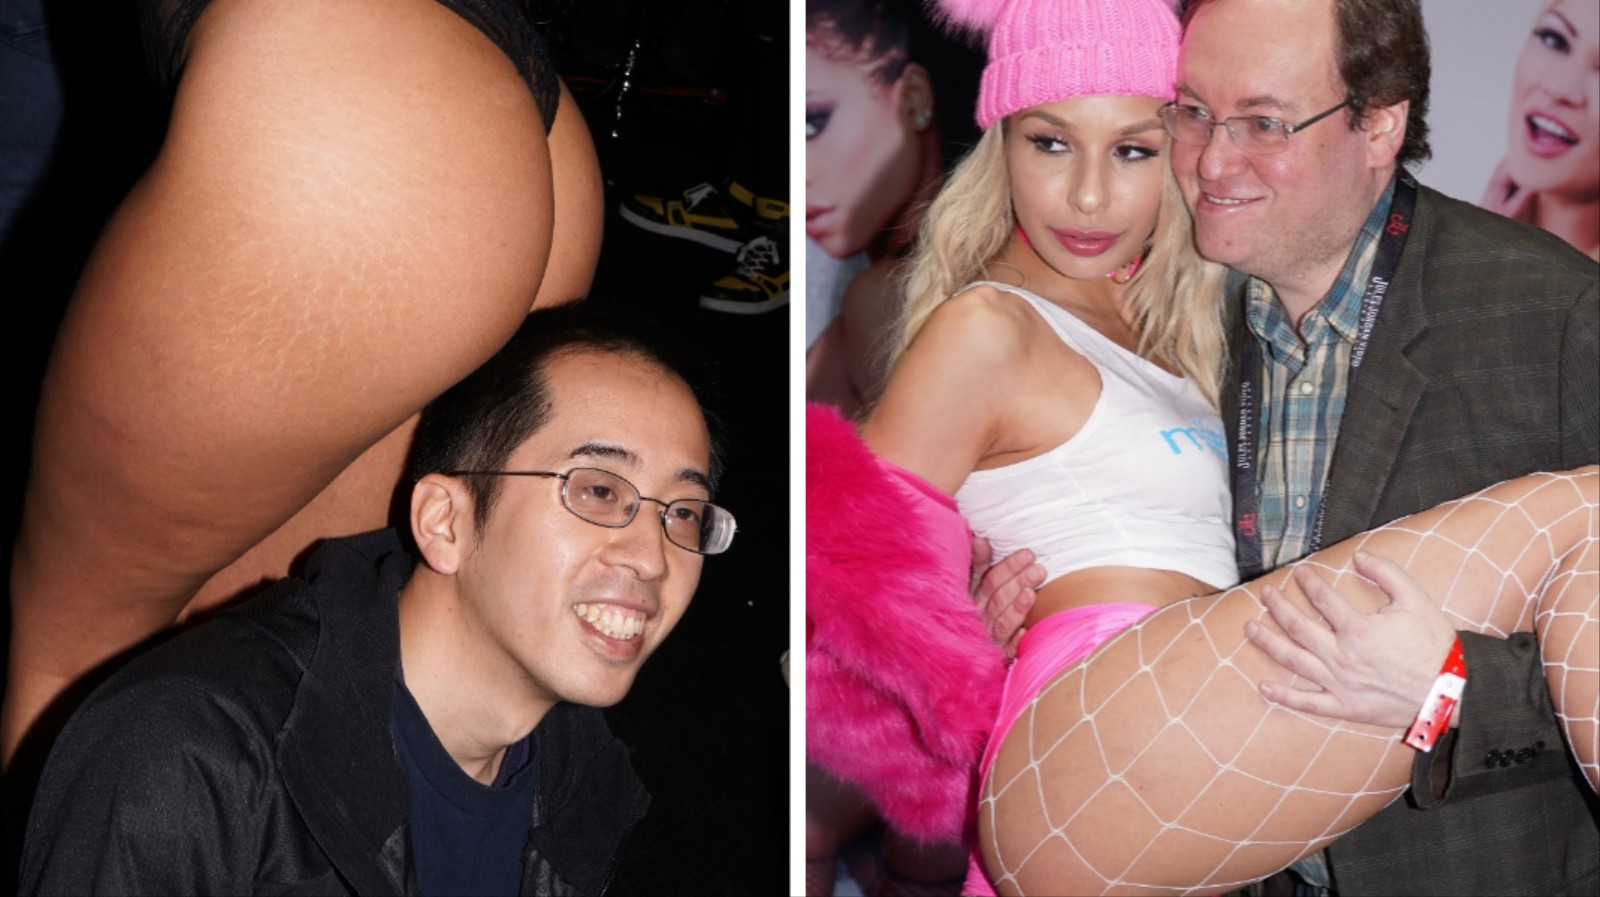 Photos of Porn Superfans at the World's Biggest Porn Event